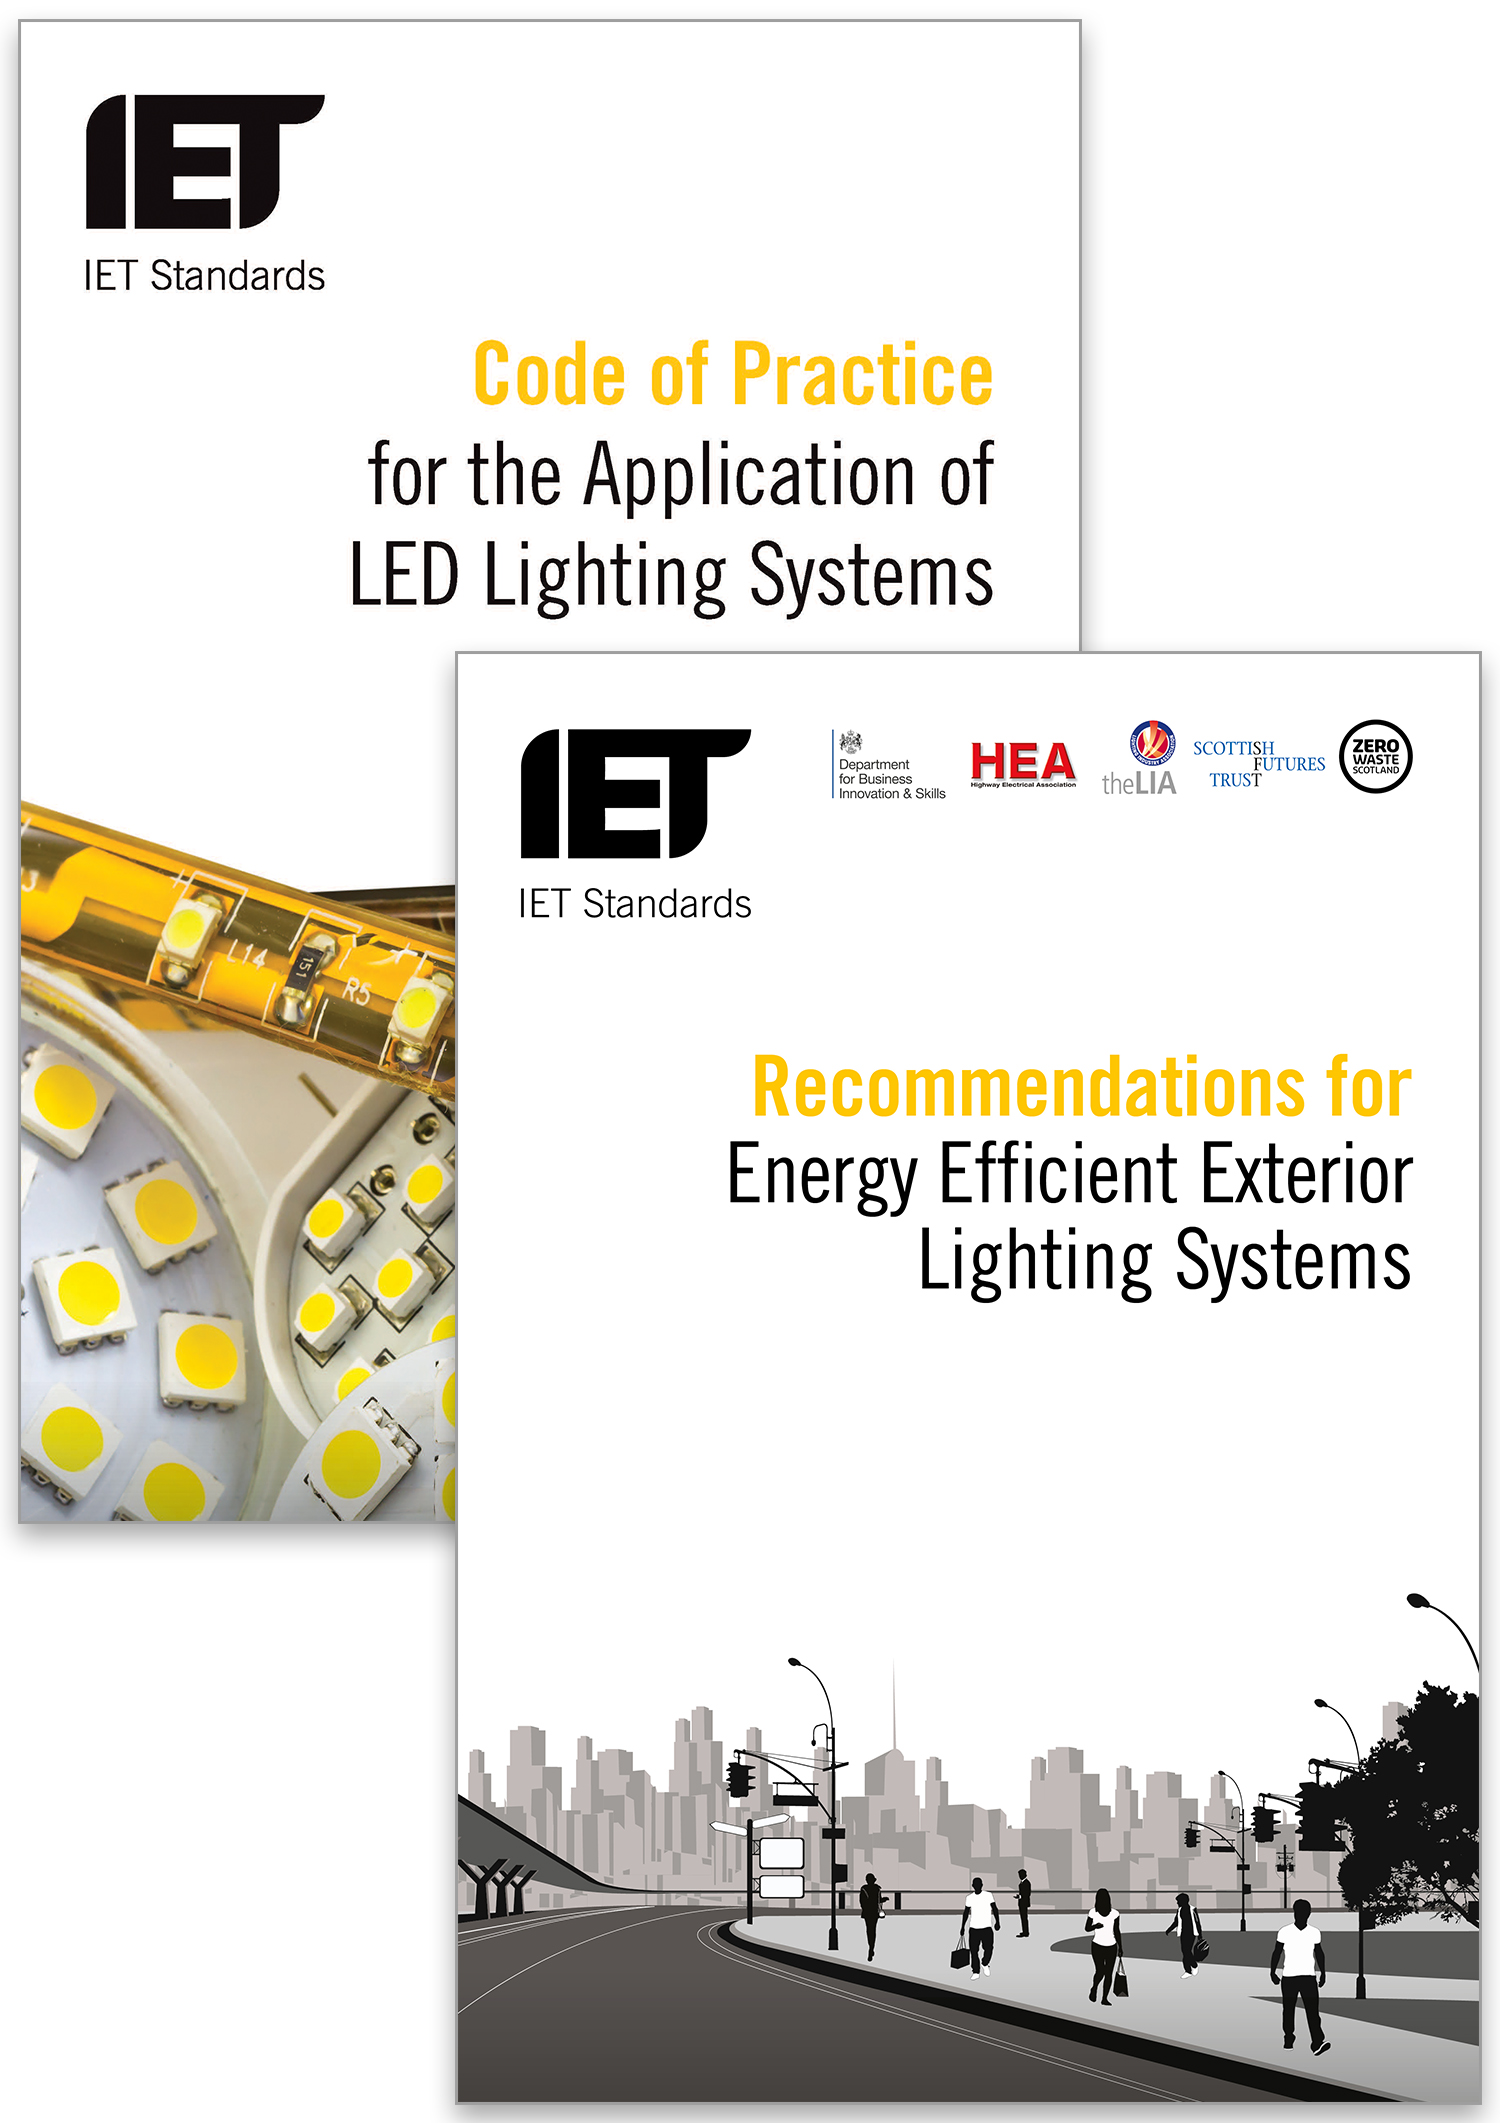 Joint print purchase packageRecommendations for Energy Efficient Exterior LightingSystems & Code of Practice for the Application of LEDLighting Systems (Print)